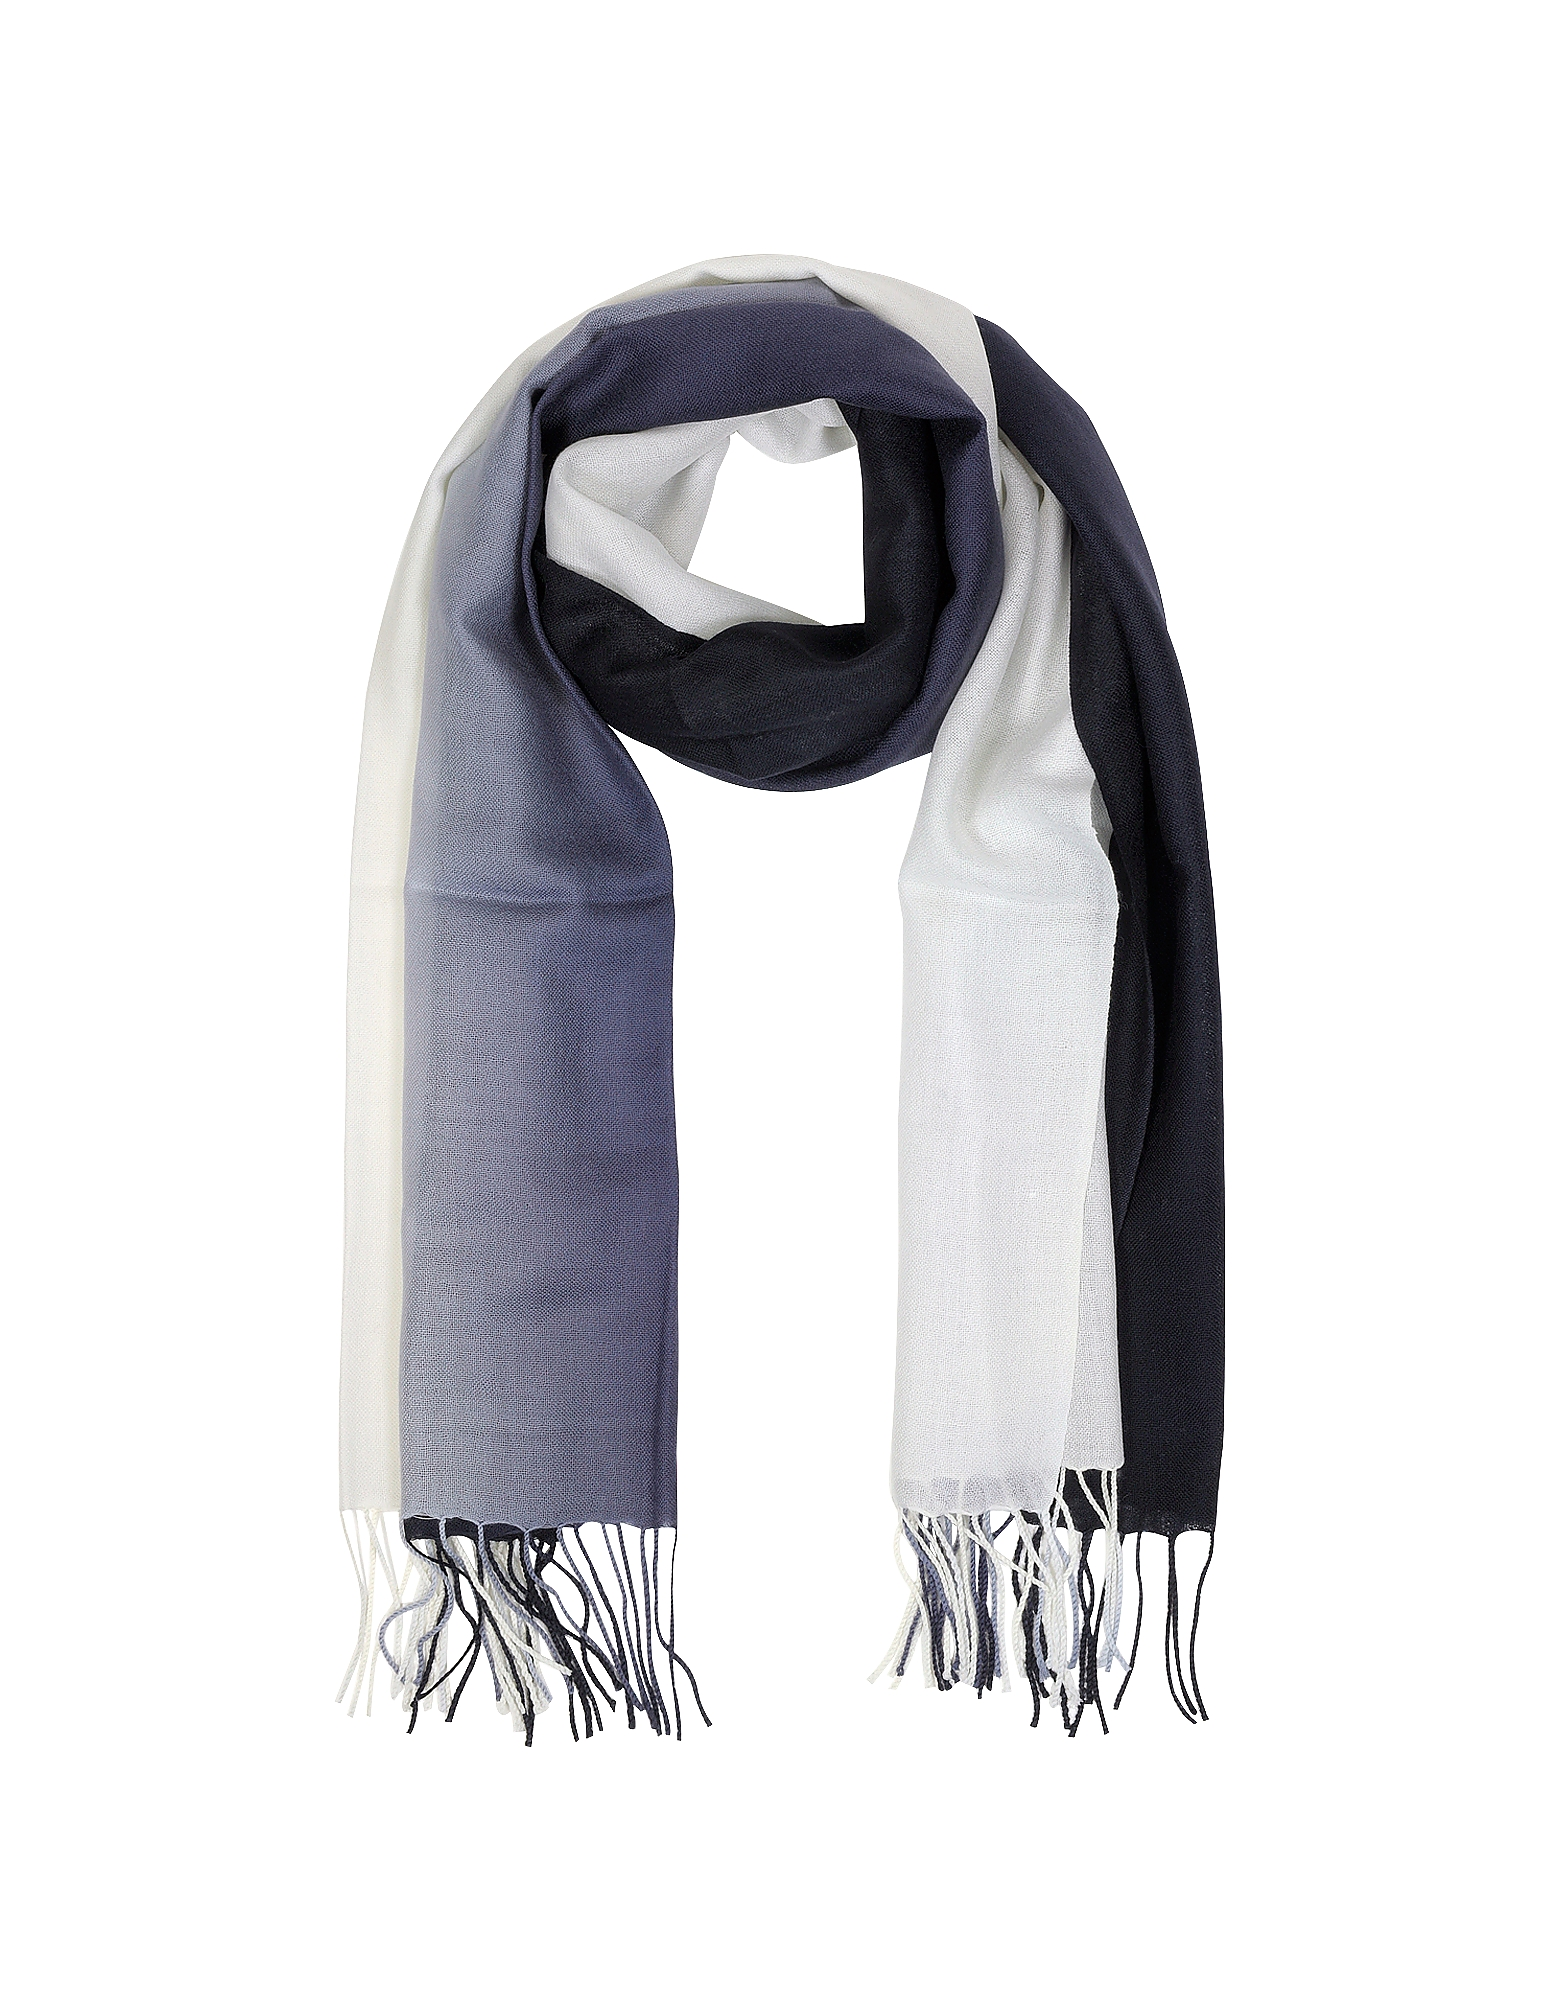 Mila Schon Long Scarves, Gradient White/Dark Blue Wool and Cashmere Fringed Stole